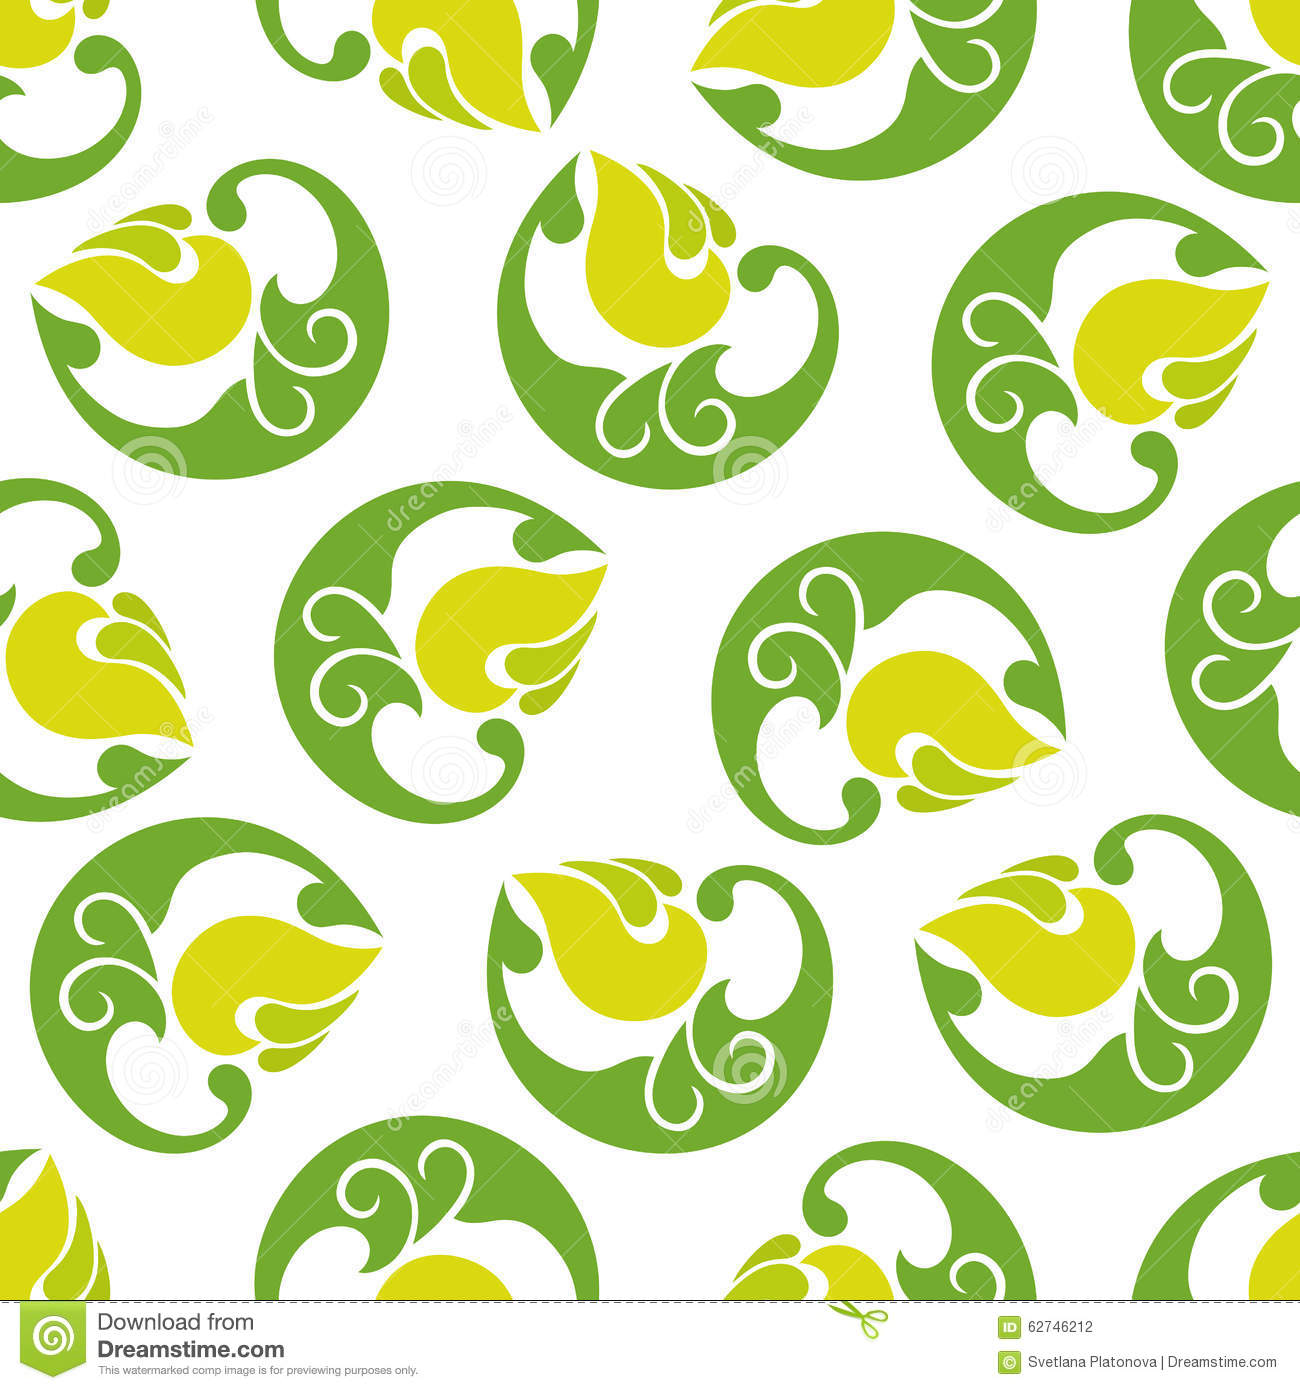 Light green and white pattern - photo#27